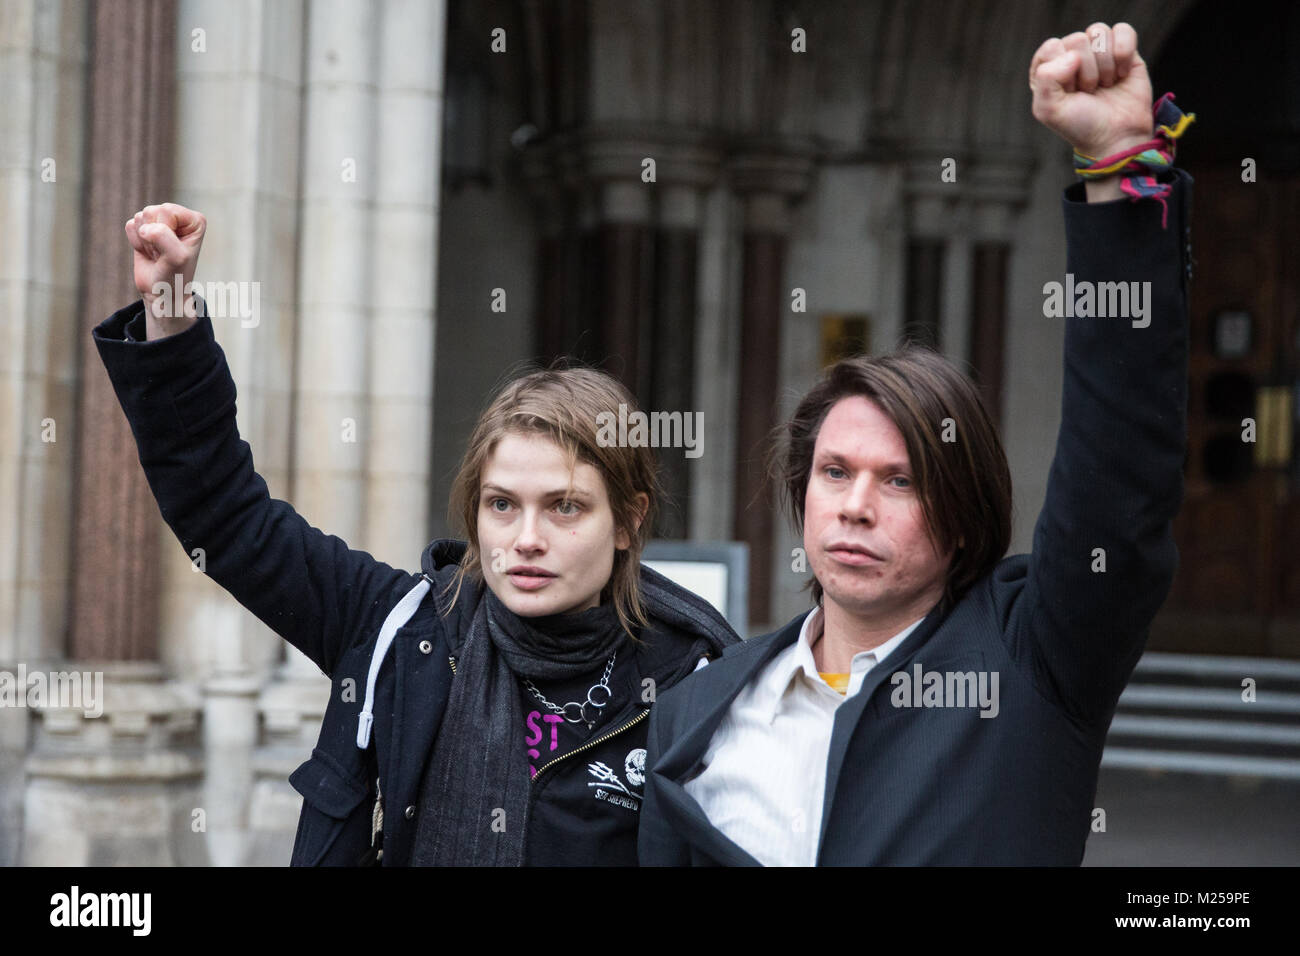 London, UK. 5th February, 2018. Alleged computer hacker Lauri Love (seen here with his girlfriend Sylvia Mann) appears - Stock Image